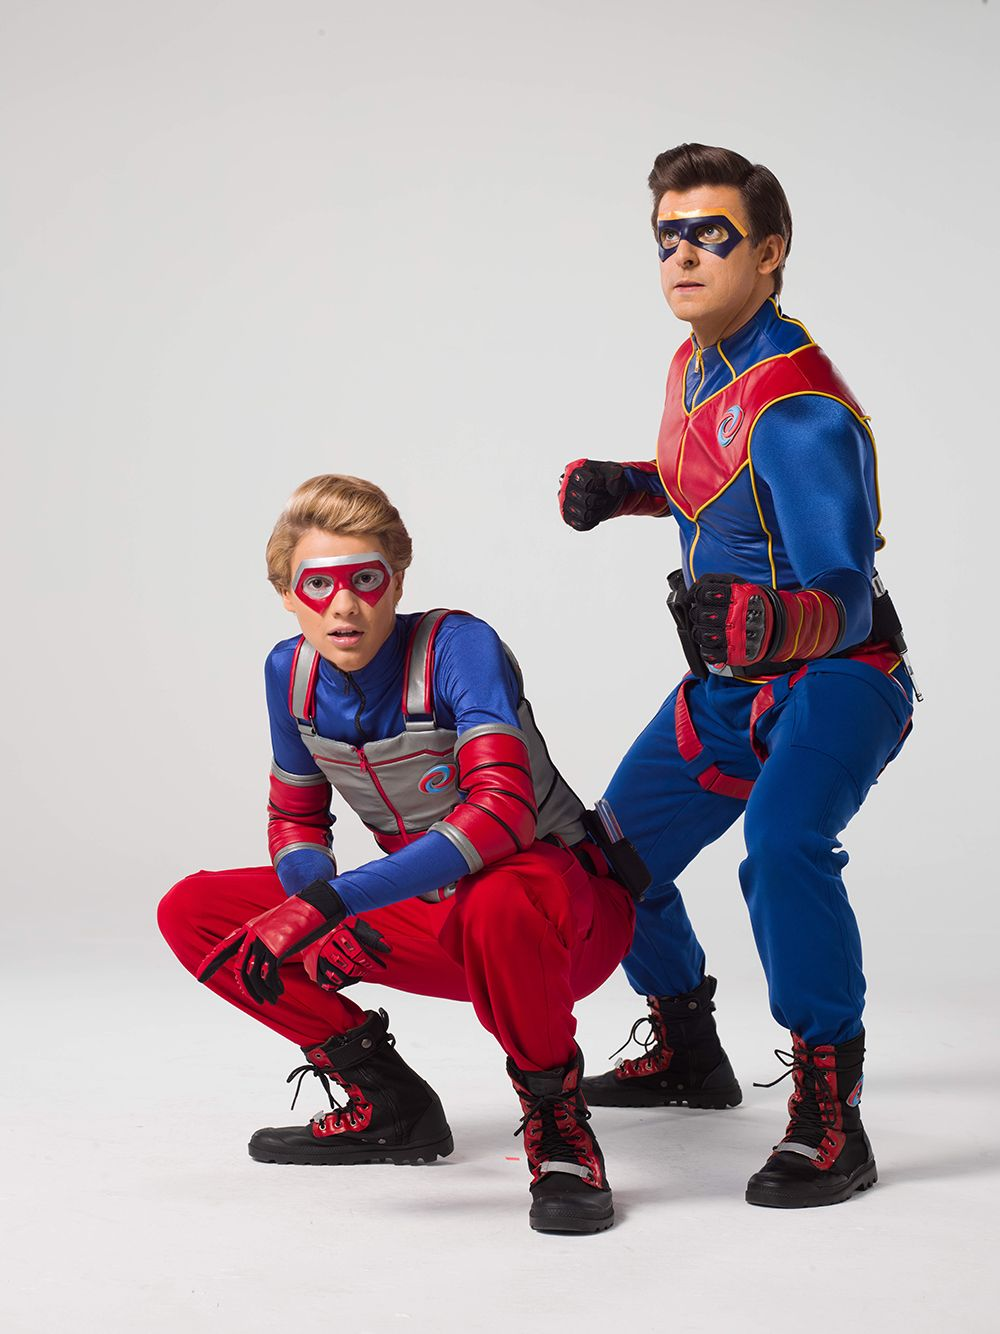 Henry Danger The Whole Bilsky Family : henry, danger, whole, bilsky, family, Henry, Danger, Season, Whole, Bilsky, Family, Episode, TV/Movies, Nigeria